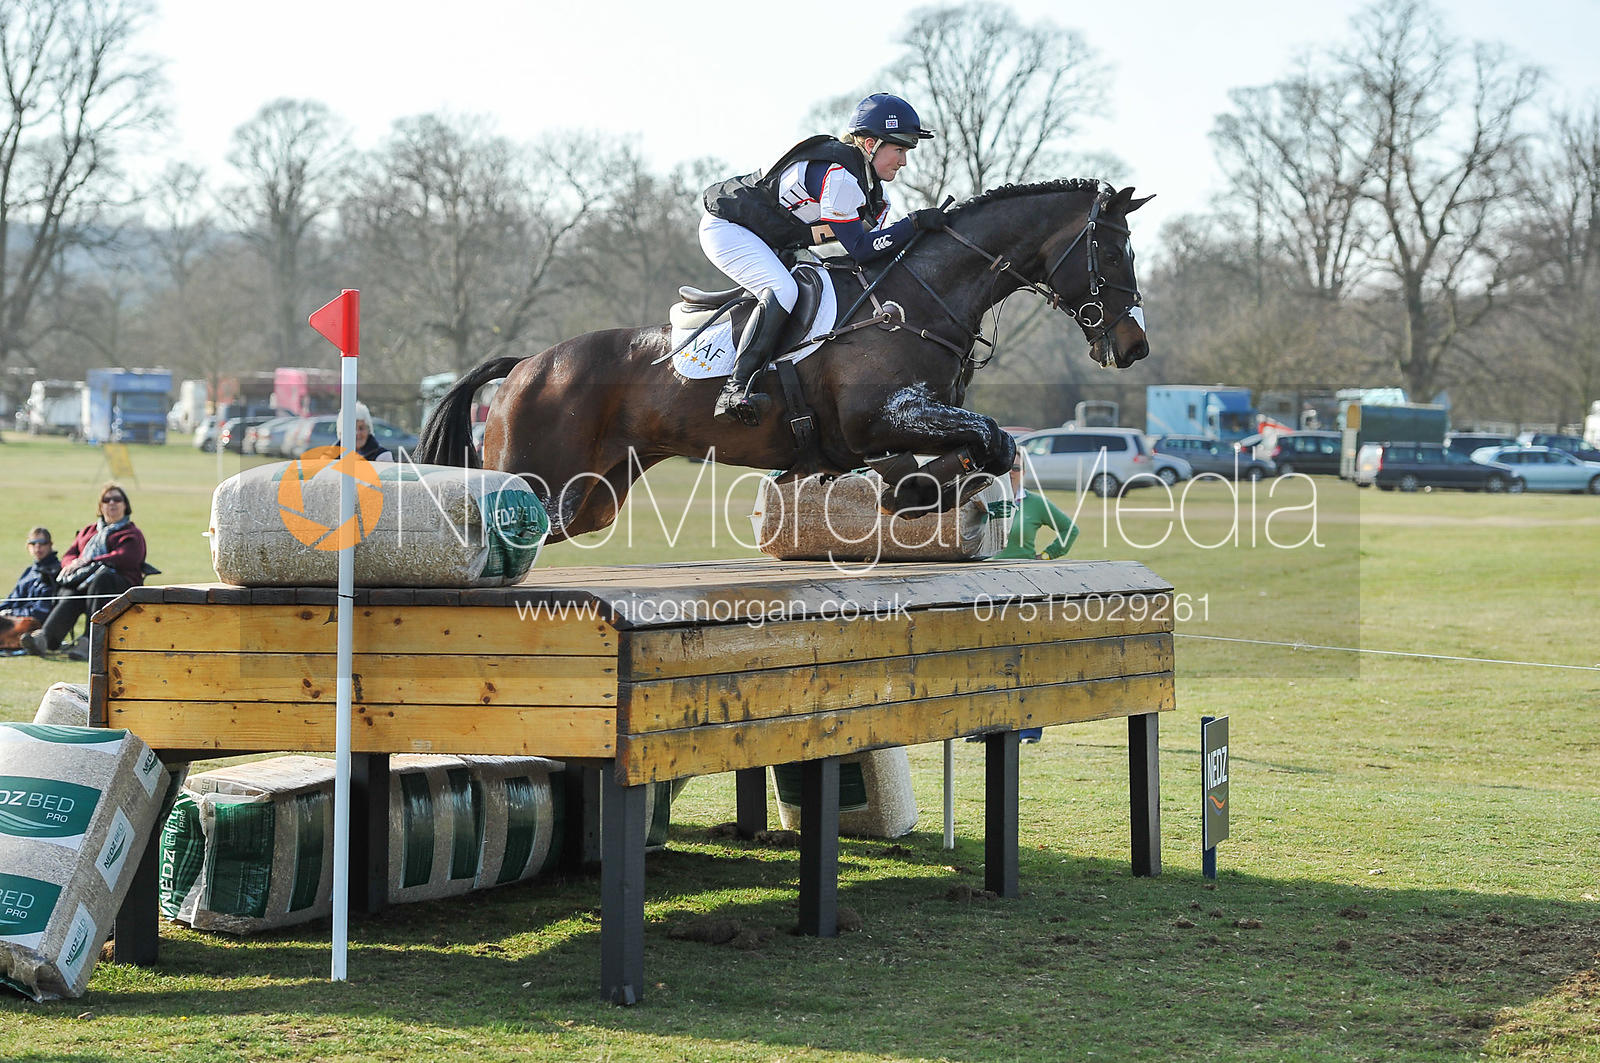 Laura Collett and RAYEF - Belton Horse Trials 2012